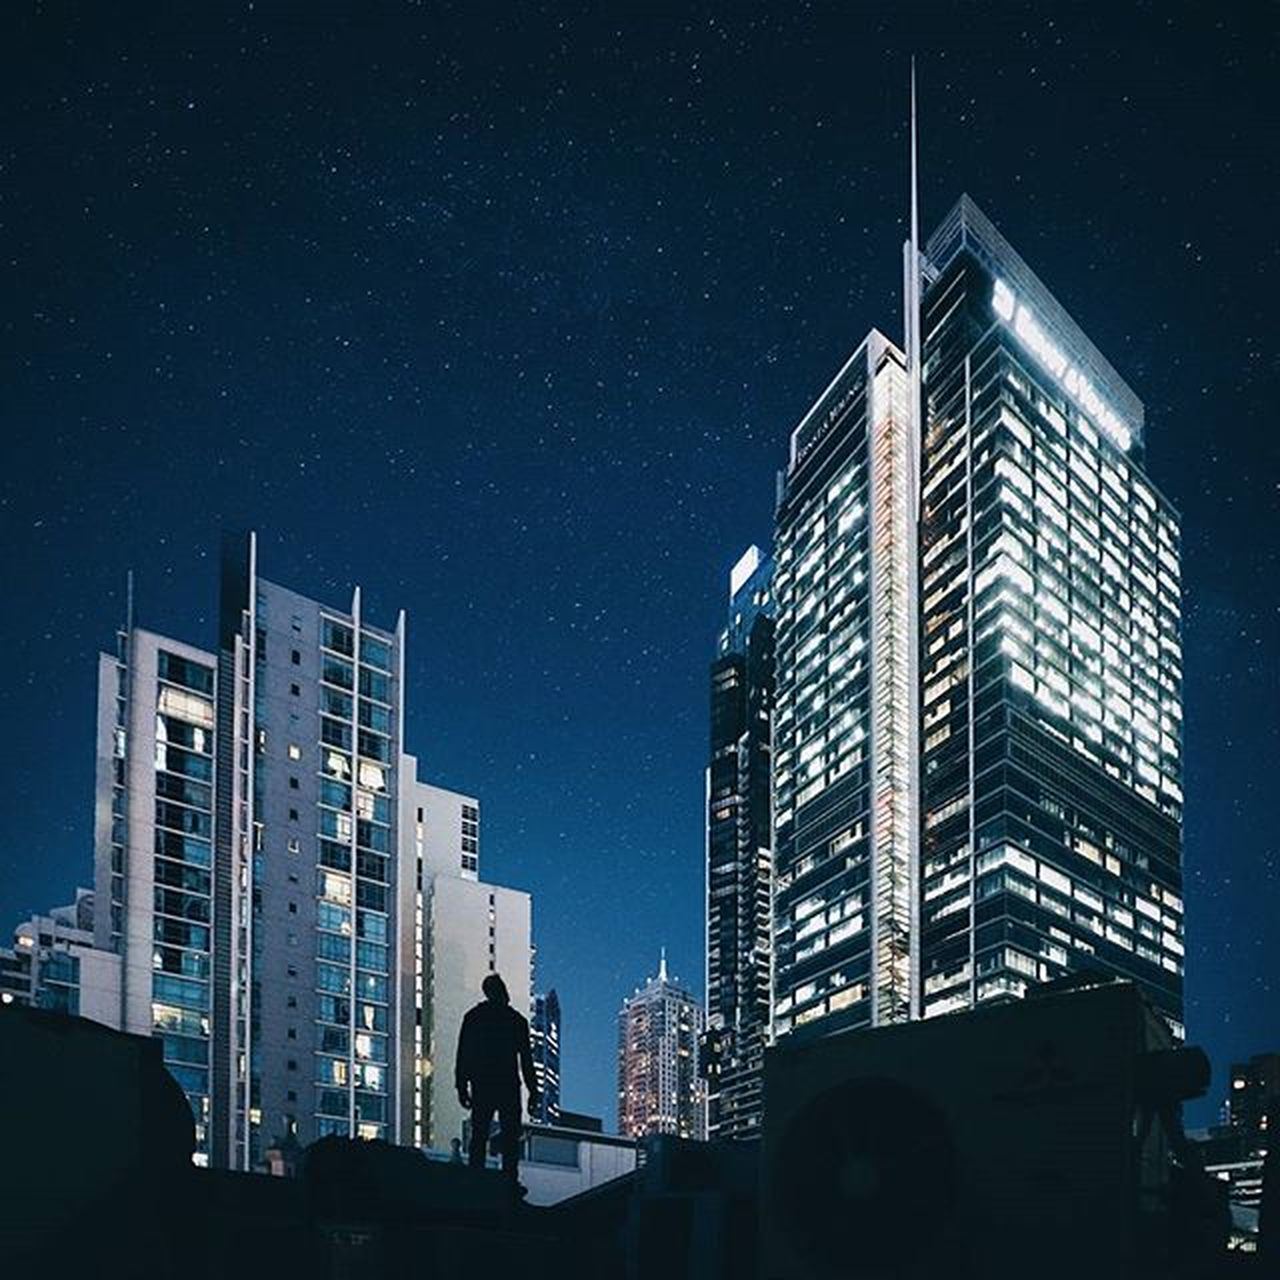 architecture, night, built structure, real people, building exterior, lifestyles, low angle view, skyscraper, men, one person, sky, outdoors, city, star - space, illuminated, silhouette, leisure activity, astronomy, modern, people, adult, adults only, one man only, only men